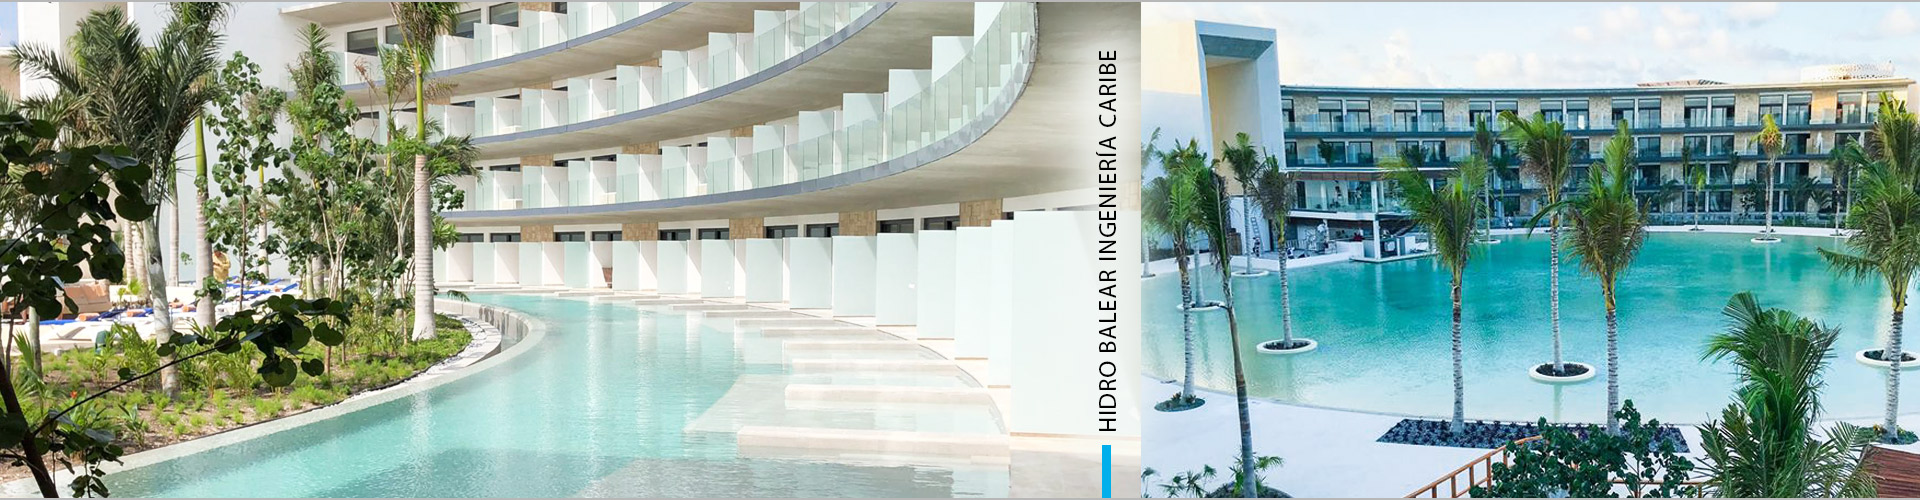 Proyecto integral de ingeniería para HAVEN RIVIERA CANCUN RESORT AND SPA